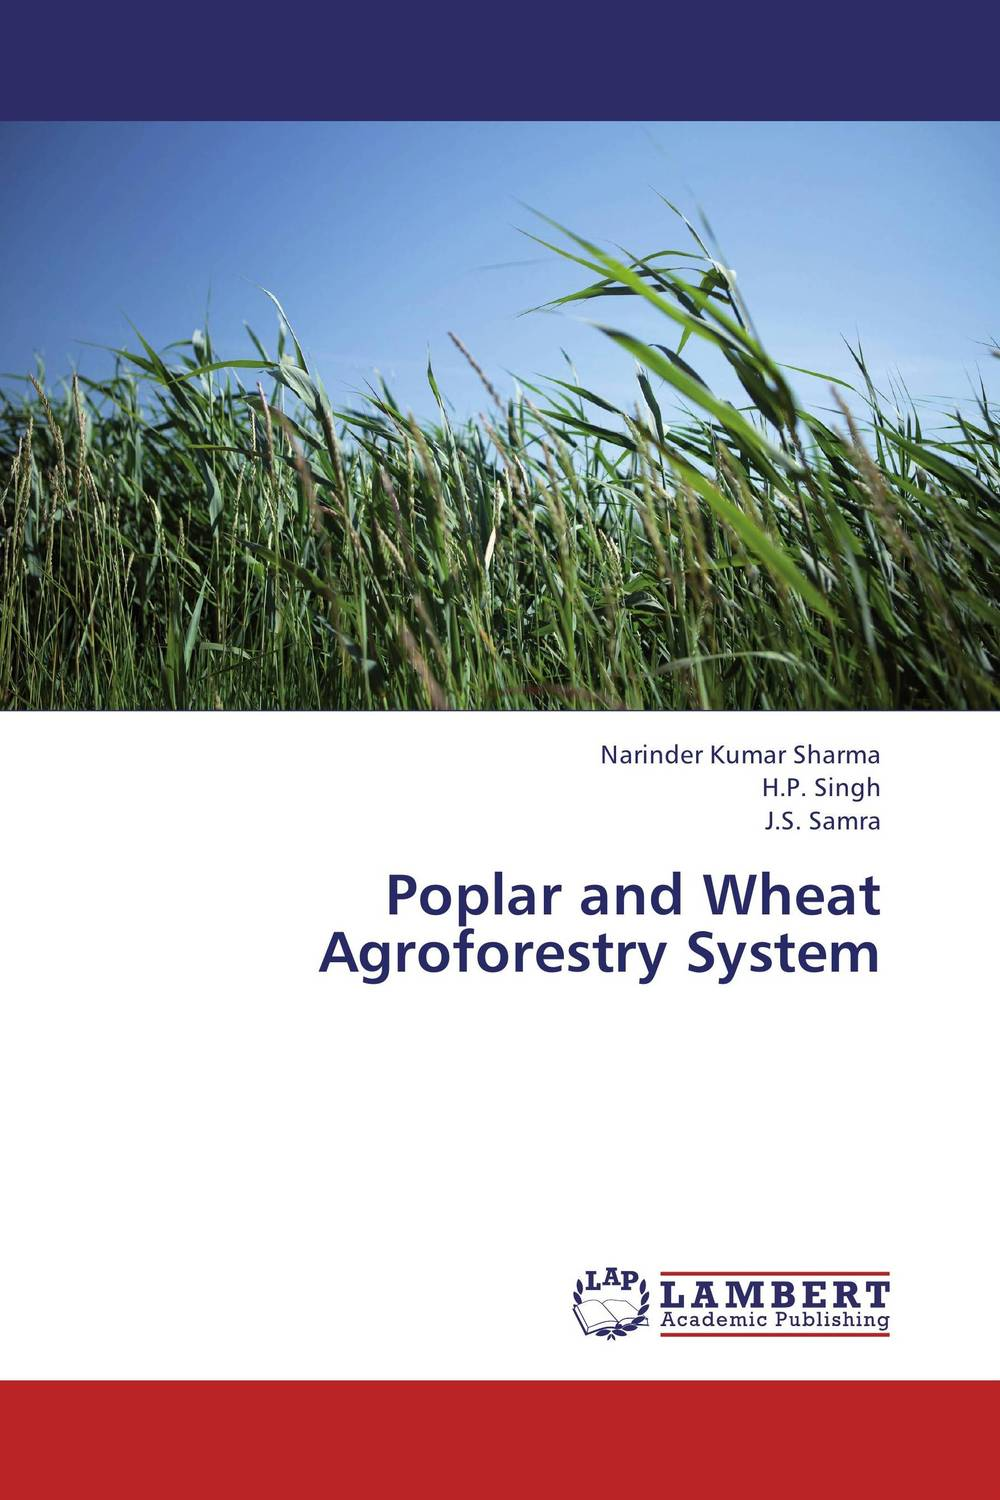 Poplar and Wheat Agroforestry System natural enemy fauna in rice wheat system of india